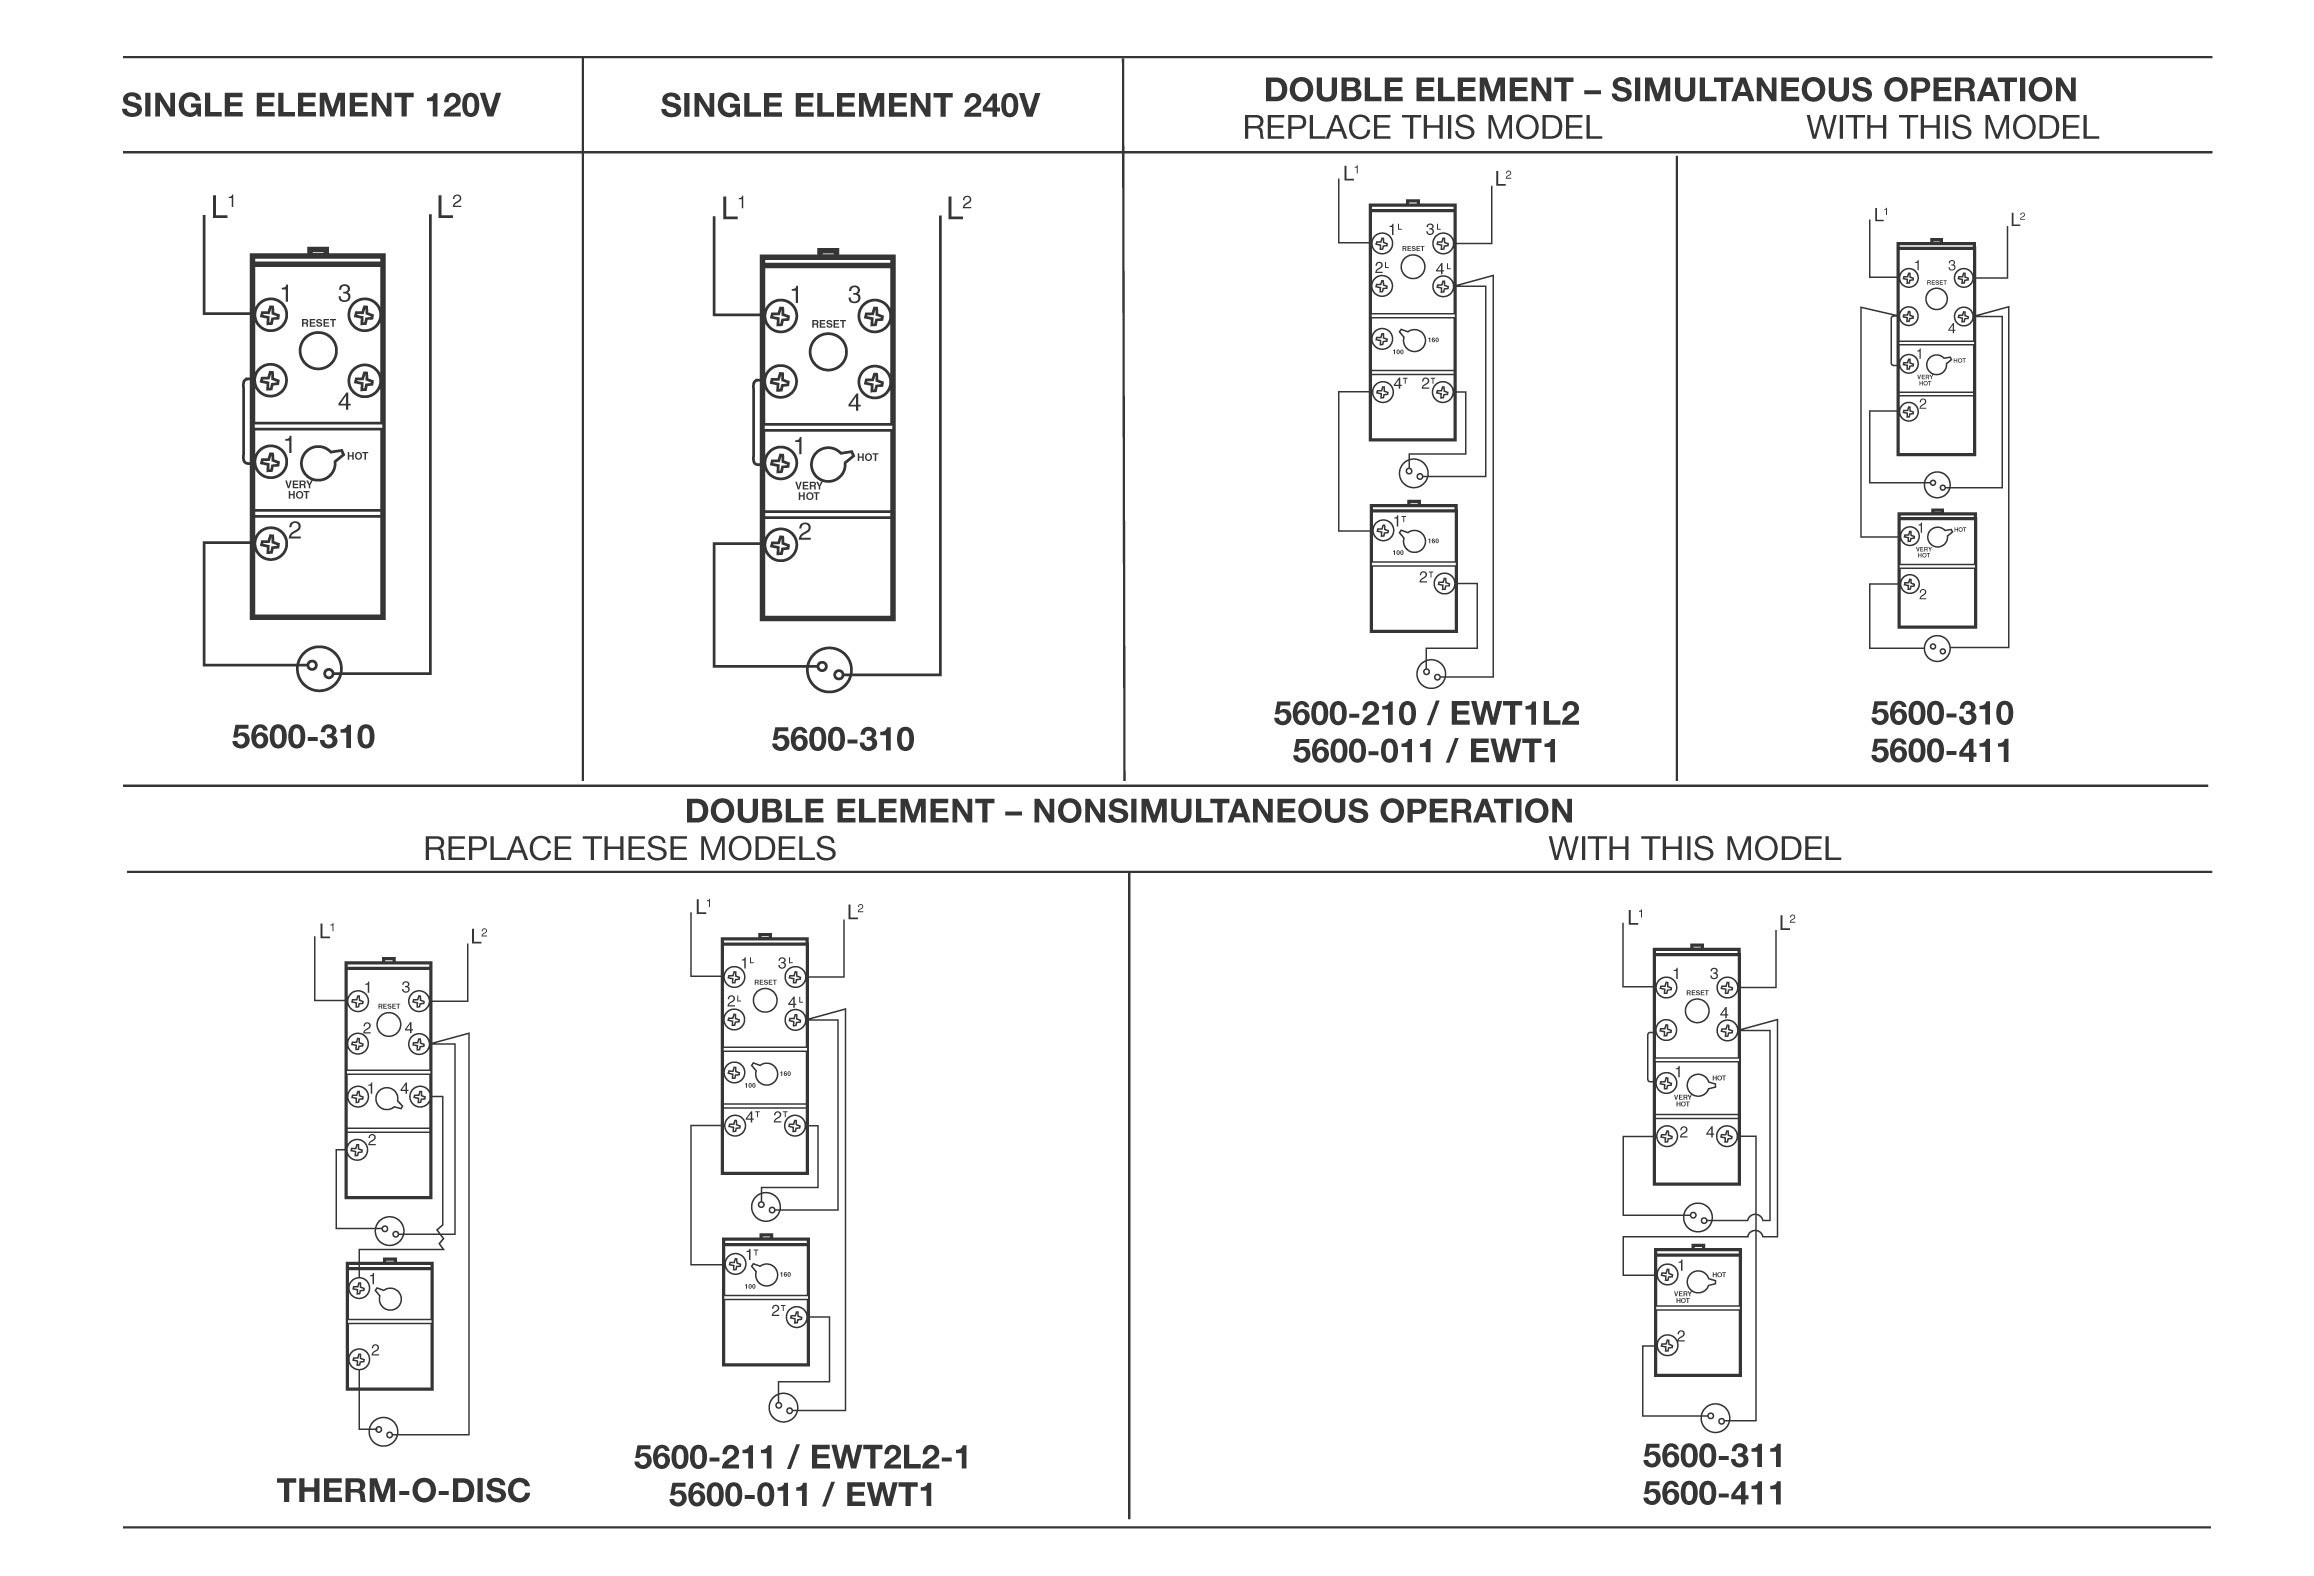 electric water heater thermostat wiring diagram Download-Water Heater Wiring Diagram Dual Element Awesome Robertshaw thermostat Wiring Diagram 2-n